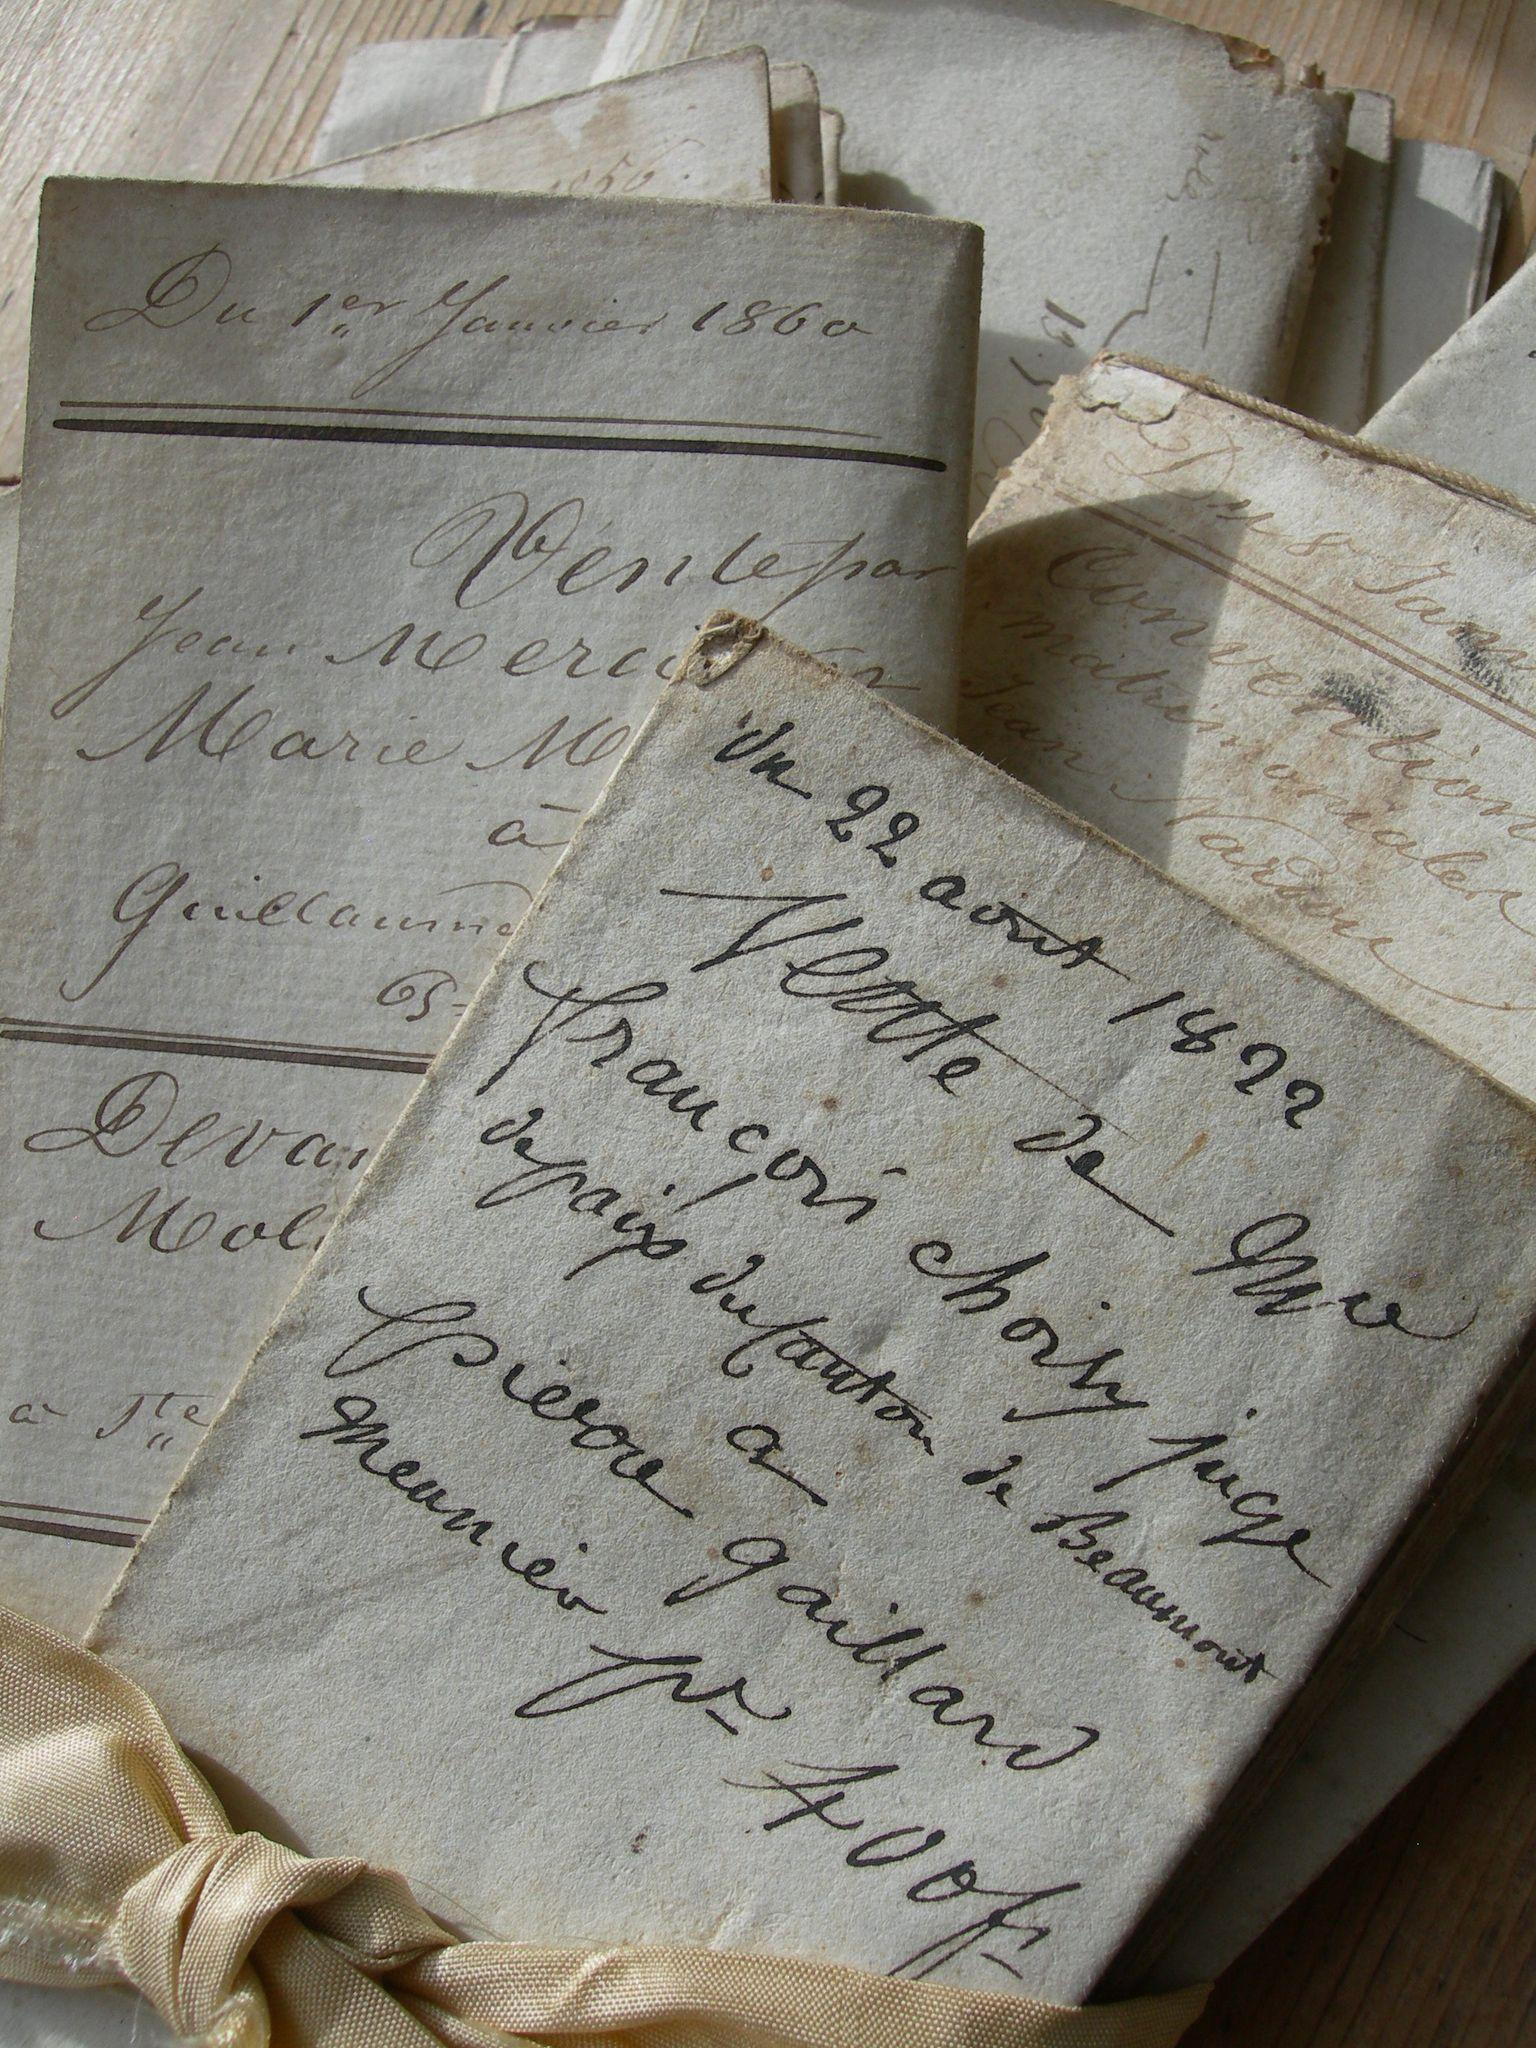 Bundle 9 antique letters early 19th Century 1822 - 1860 2nd French Revolution